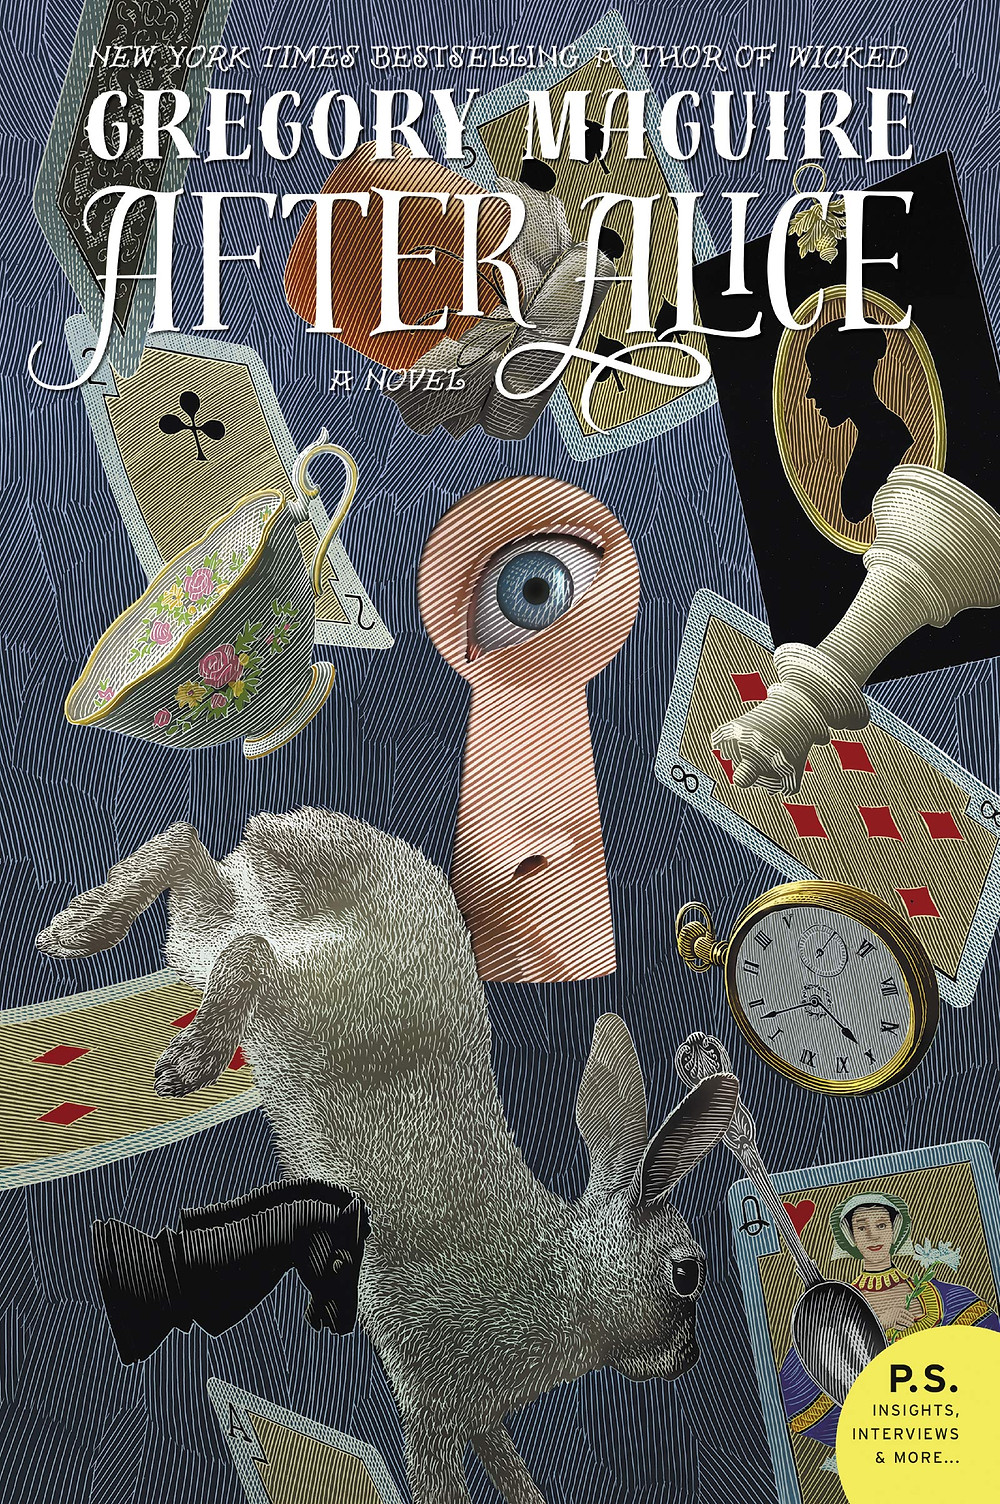 Book cover of After Alice by Gregory Maguire.